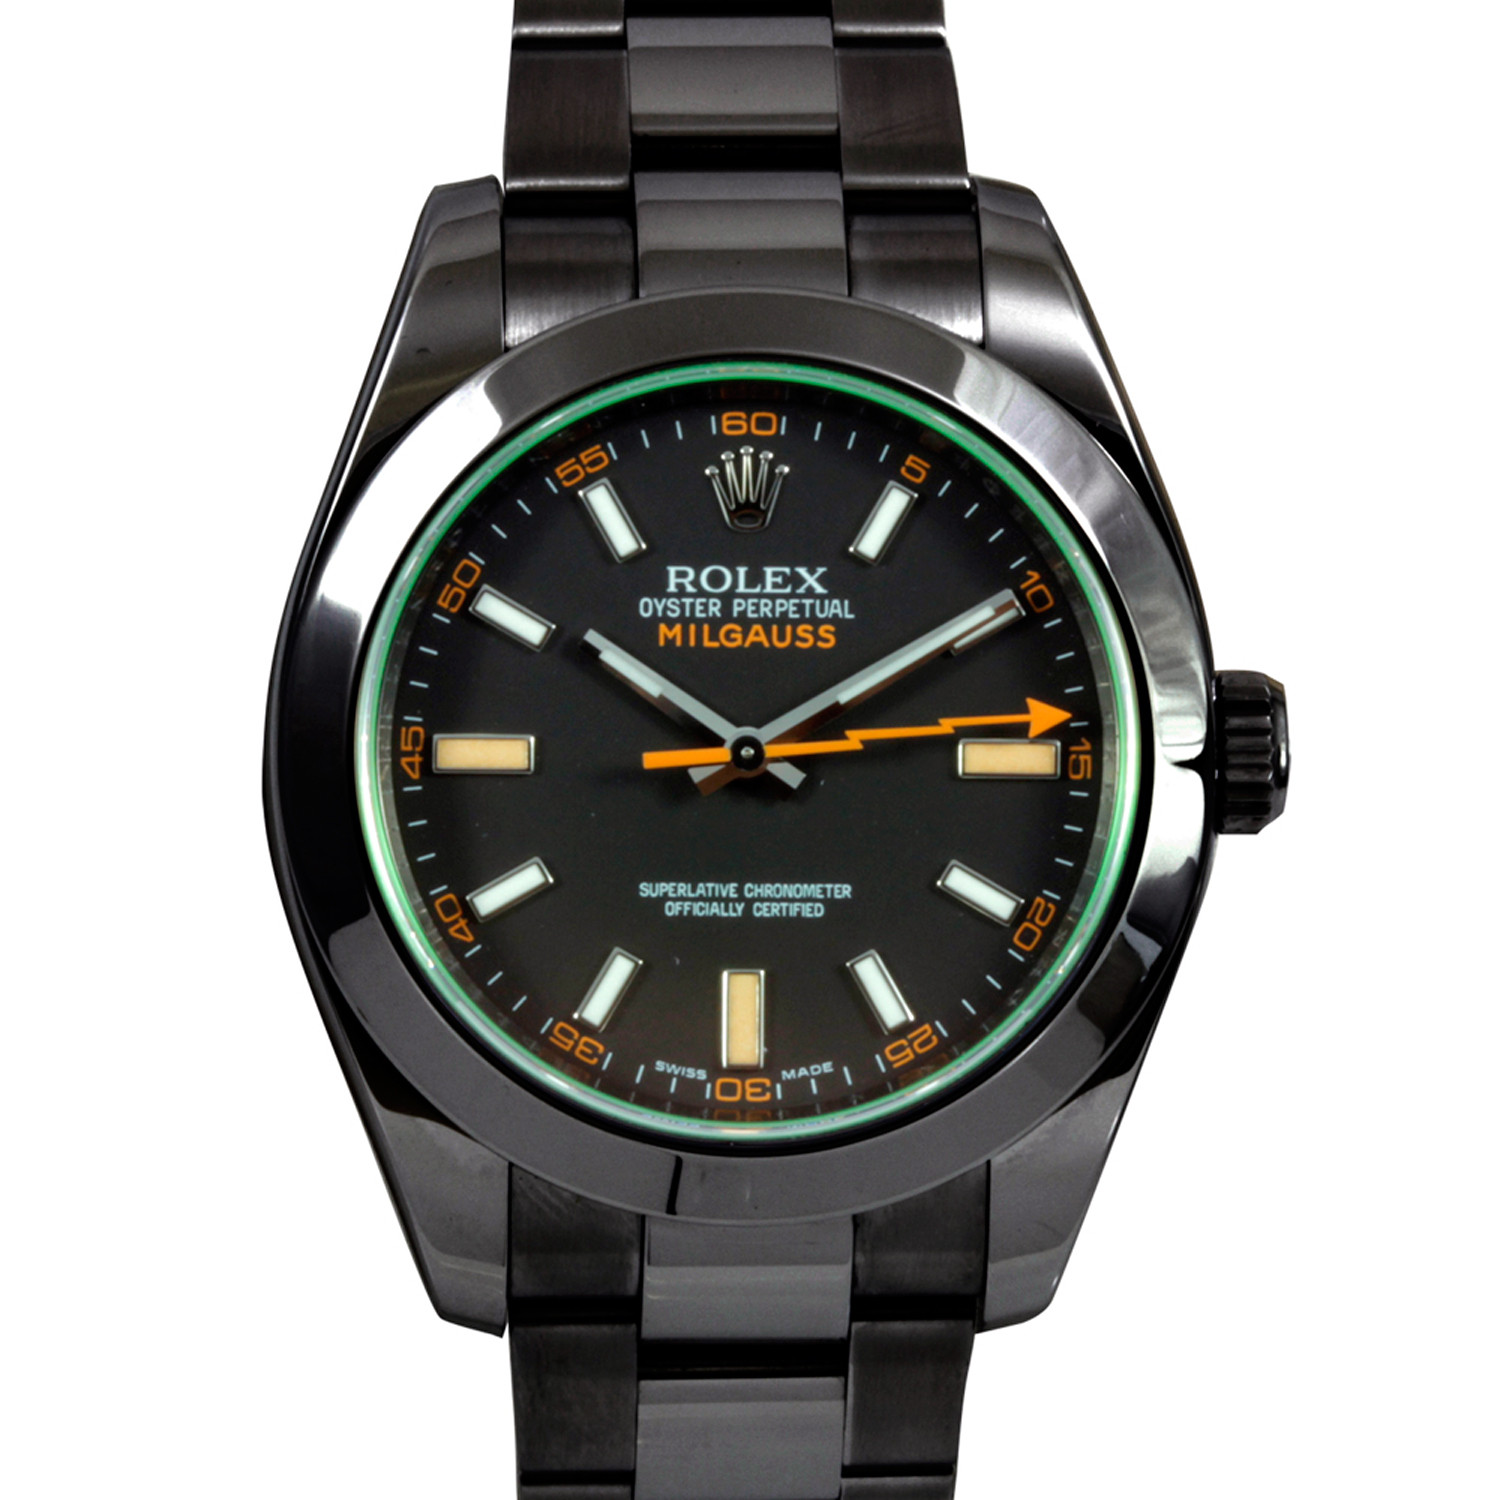 Rolex Milgauss w/ Green Crystal + Custom DLC/PVD Coating ...